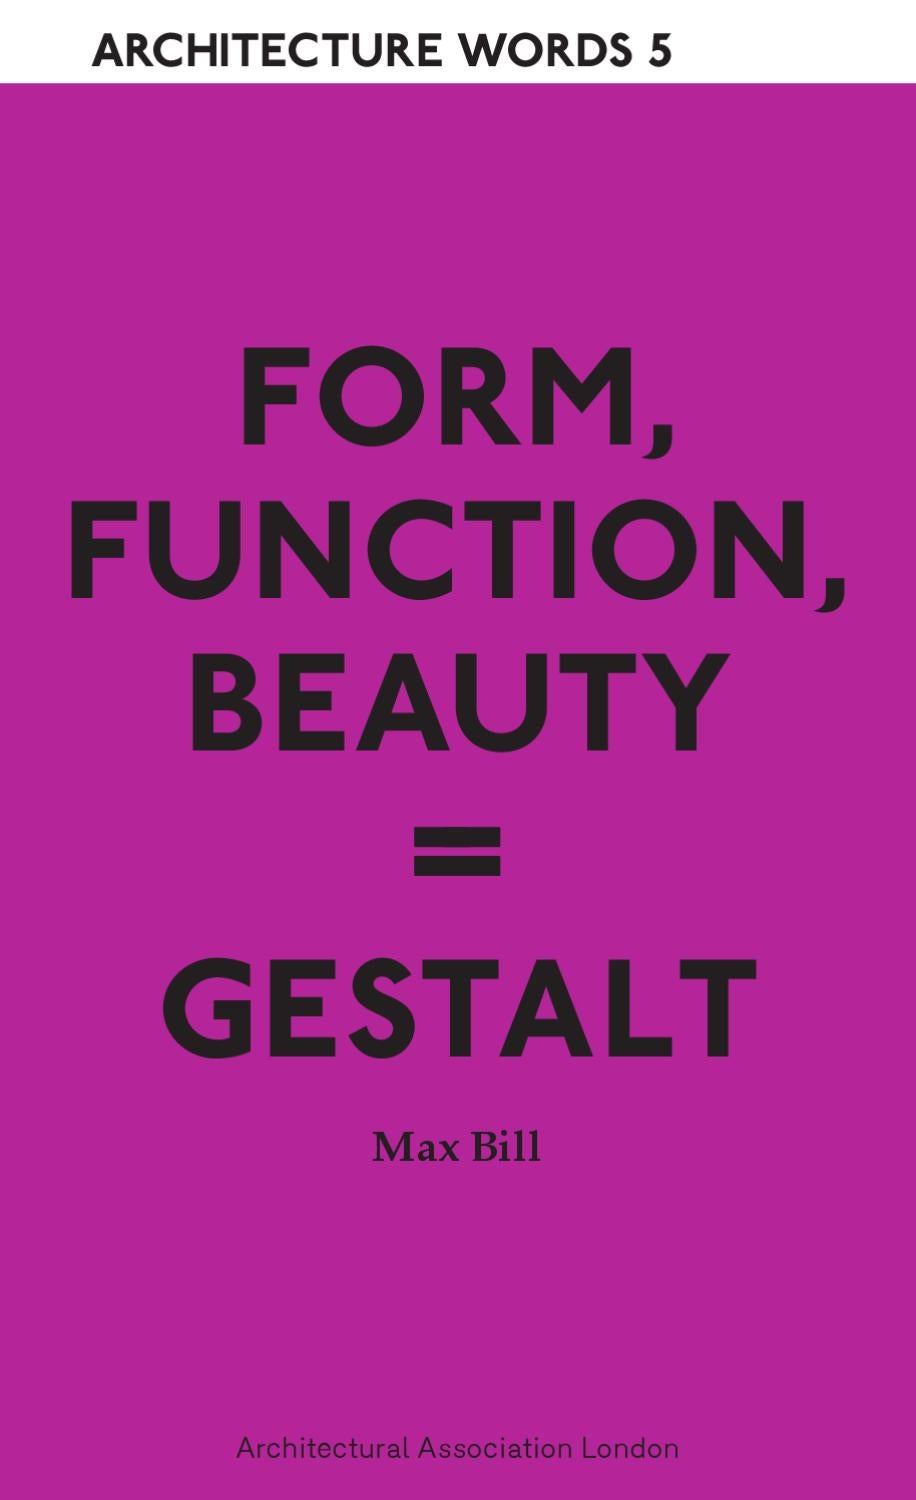 Architecture Words 5 Form Function Beauty Gestalt Max Bill By AA School AADP